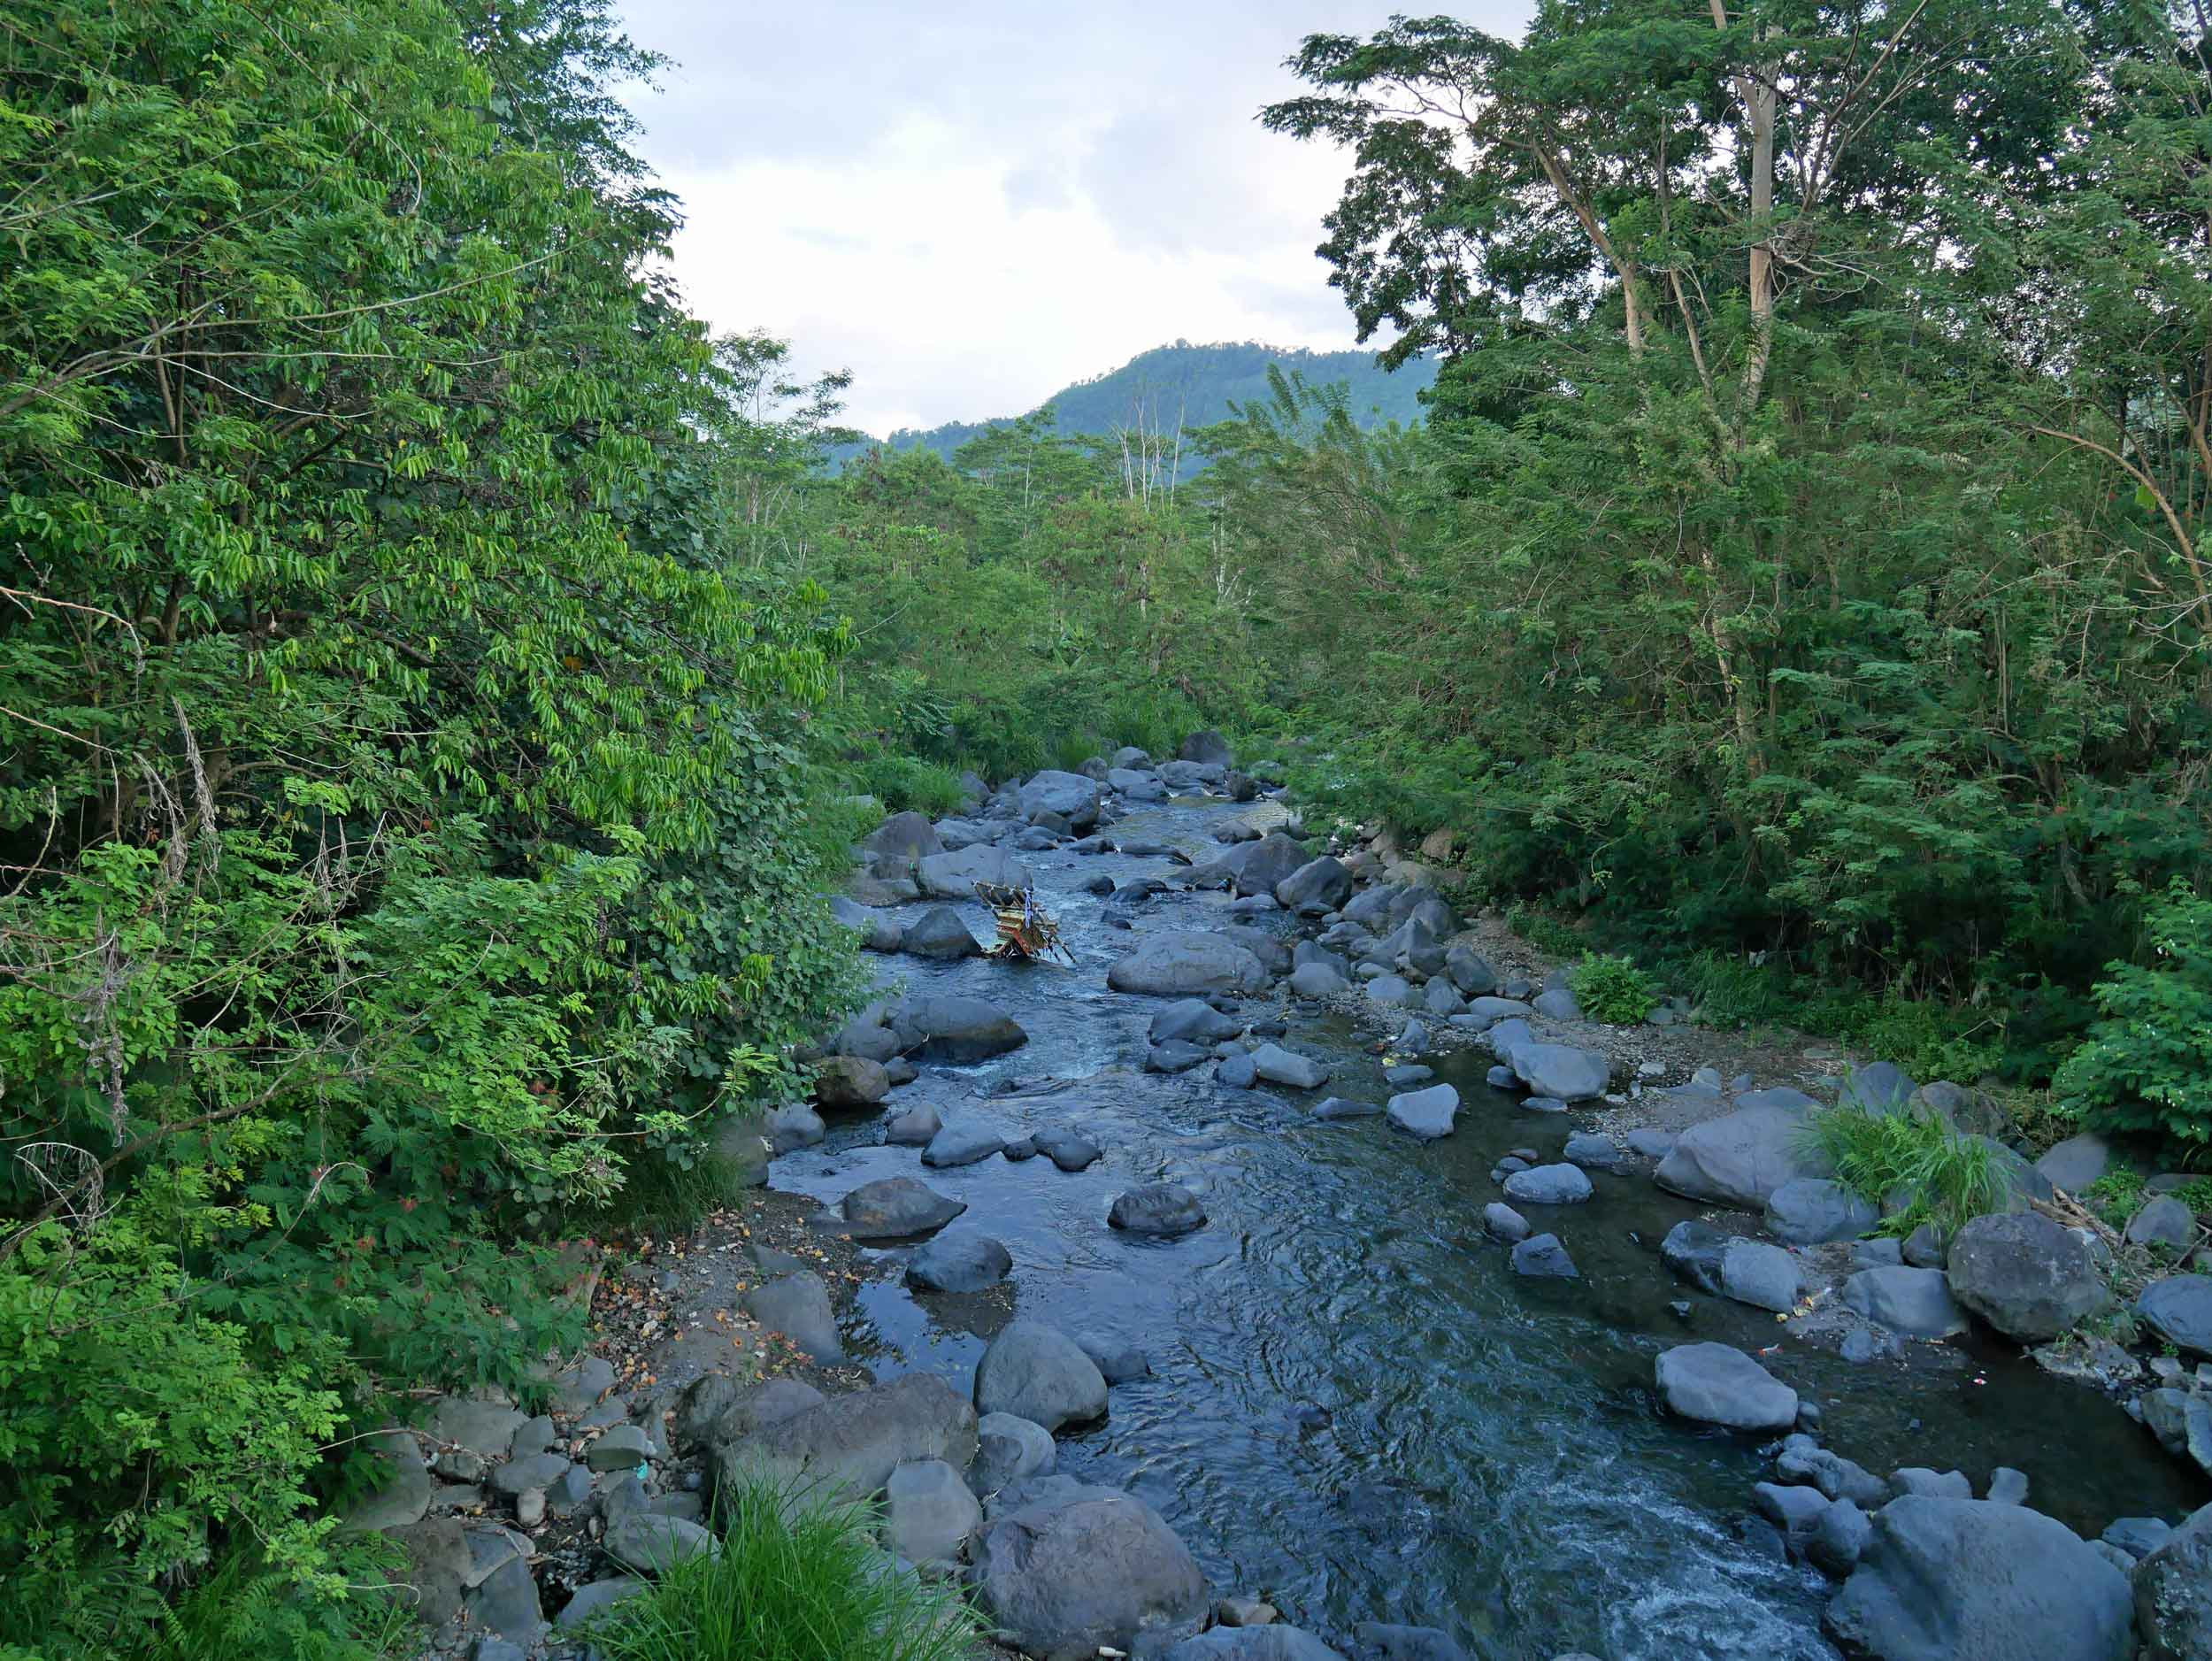 A stroll through the village leads to the Unda River where locals were partaking in their nightly baths.